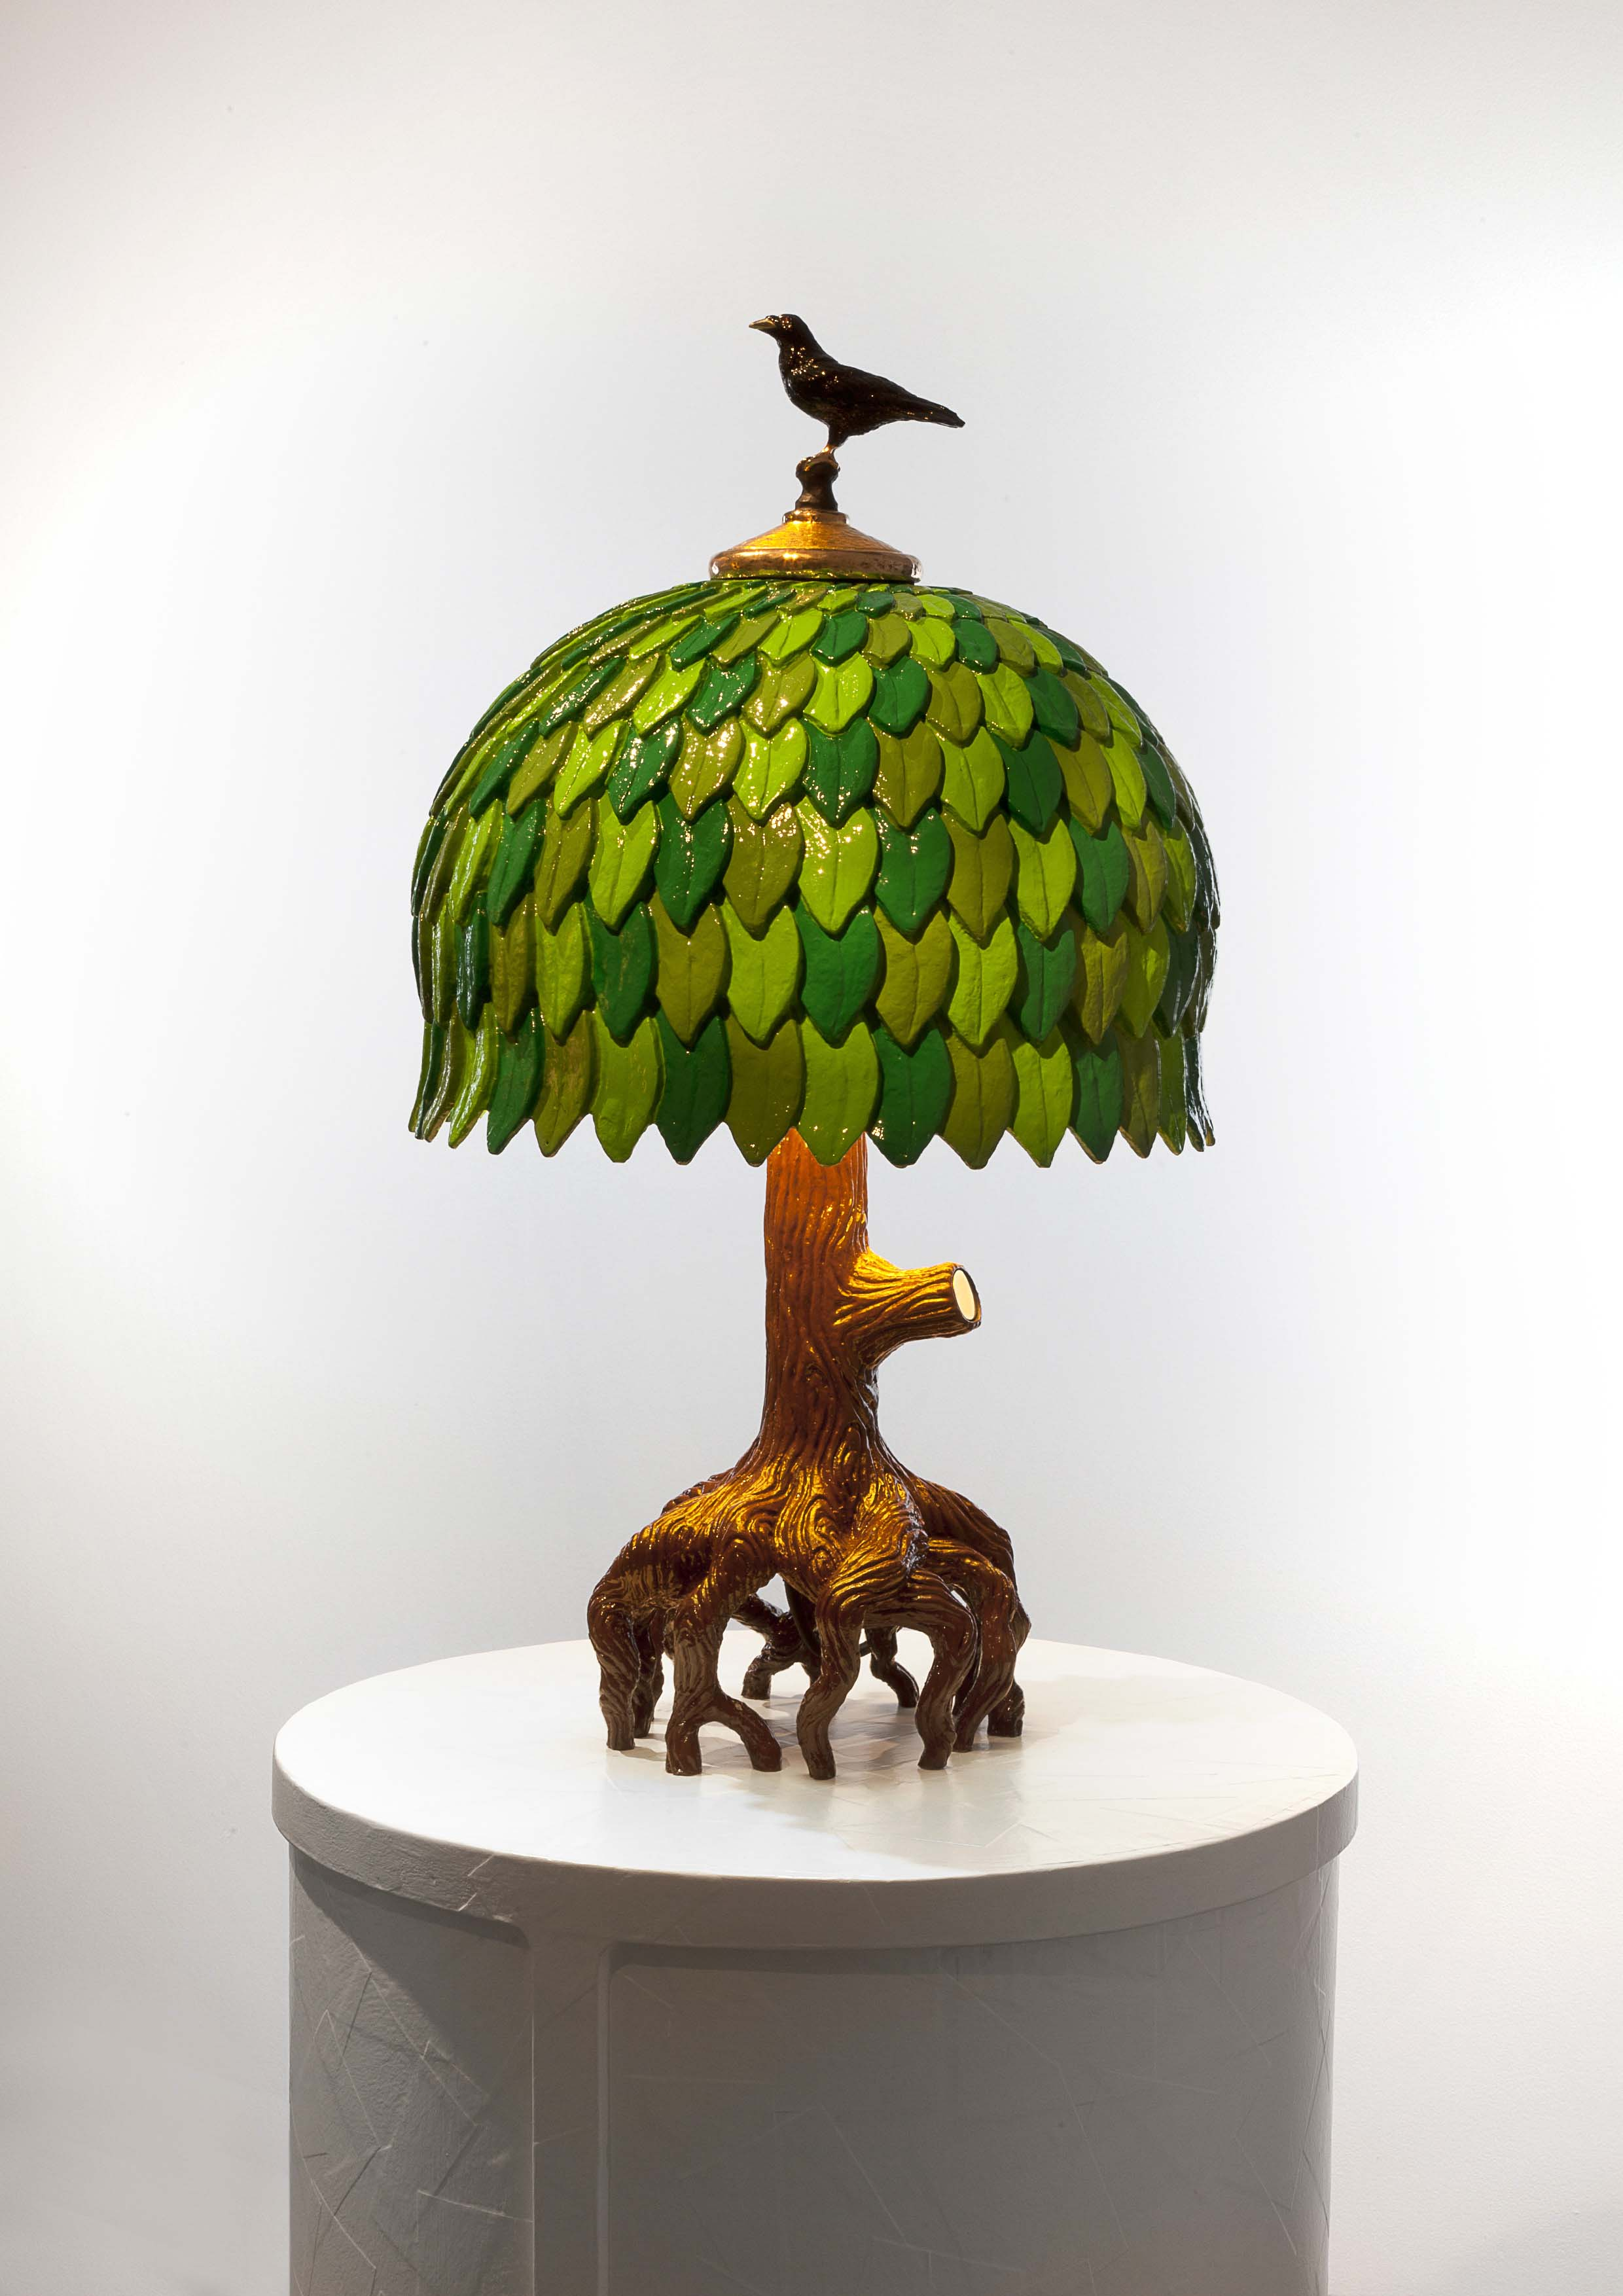 TIFFANY TREE LAMP 2017 POLISHED AND PATINATED BRONZE, HAND PAINTED, LED H60 L39 W39 CM / H23.6 L15.4 W15.4 IN LIMITED EDITION OF PROTOTYPE 8 + 3 AP